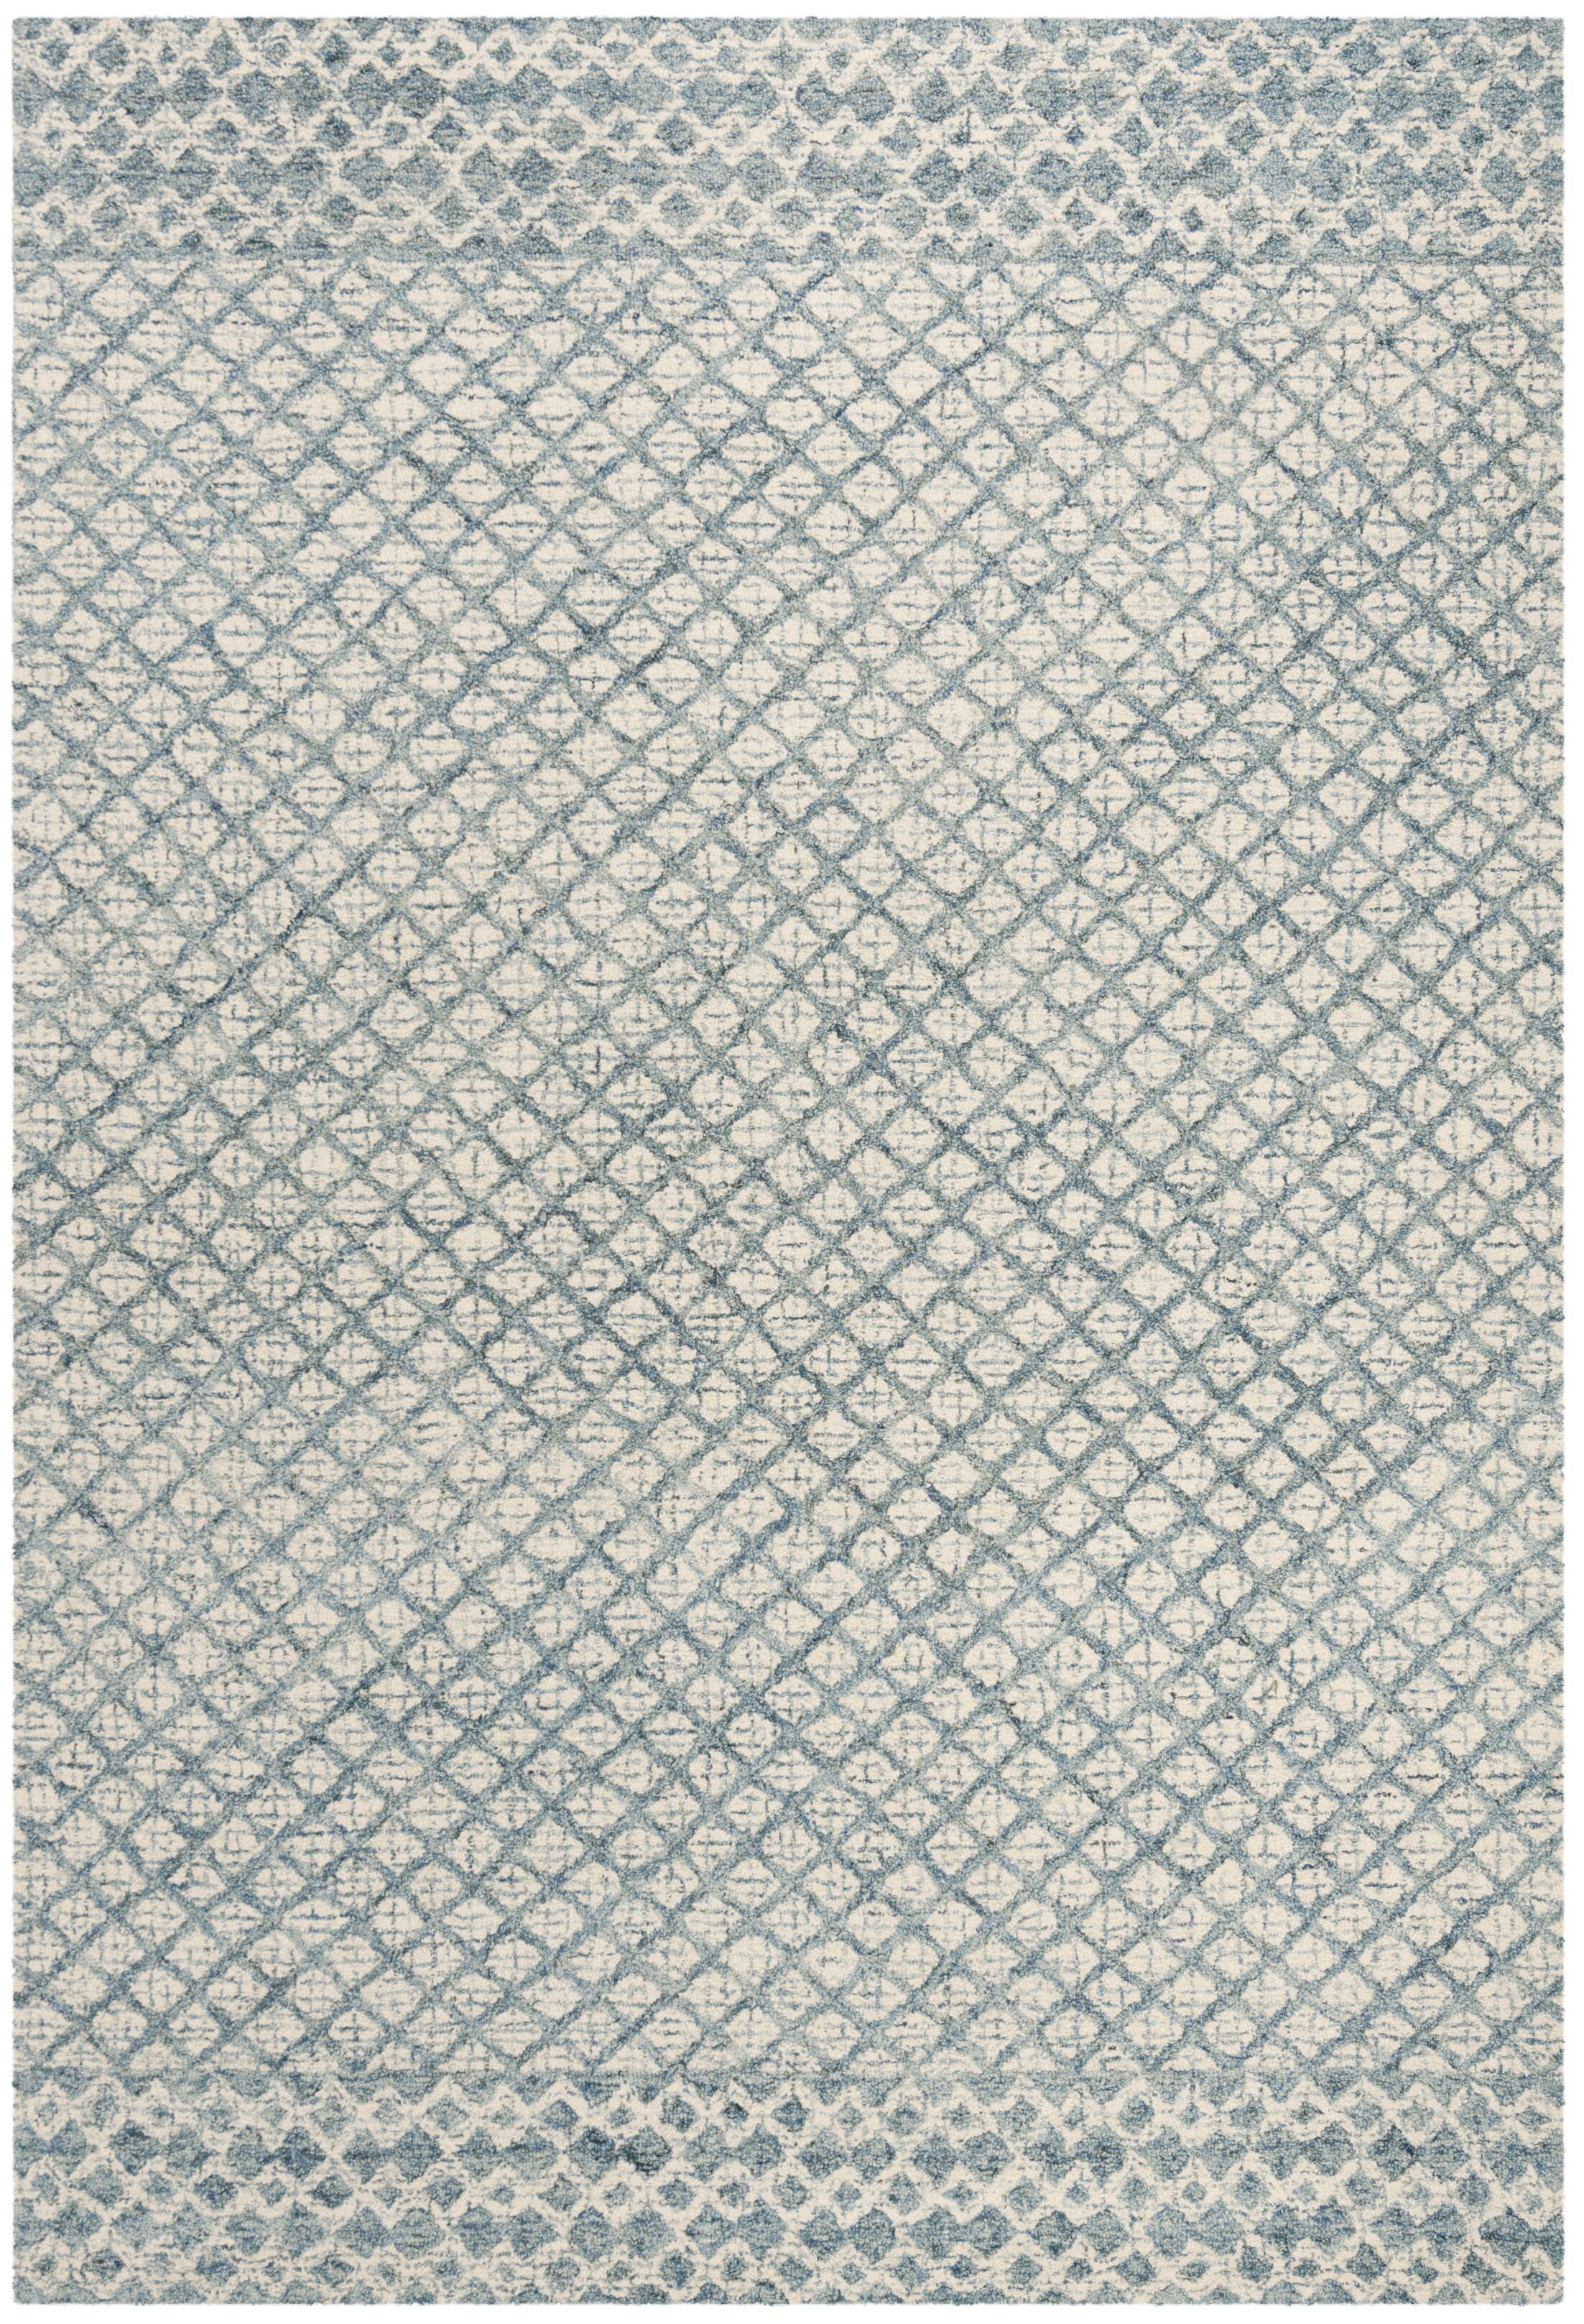 Costin Abstract Hand-Tufted Wool Blue/Ivory Area Rug Rug Size: Runner 2' 3